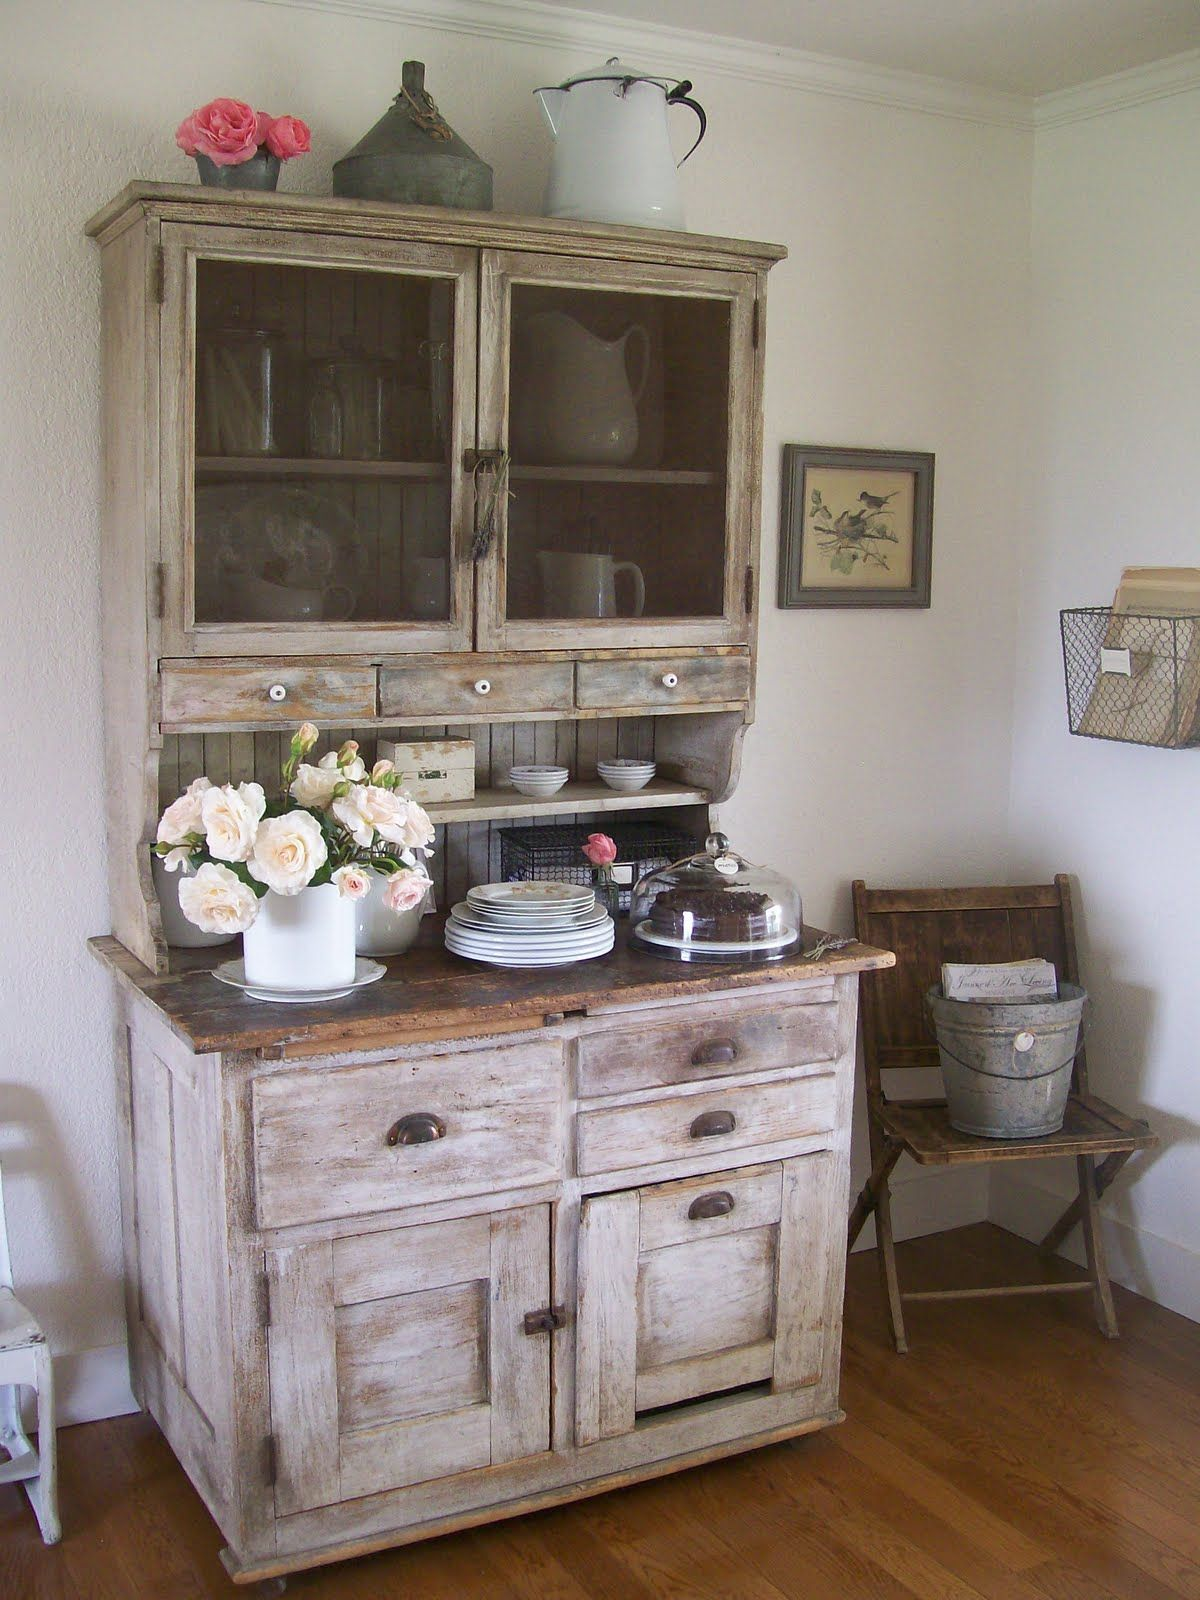 I'm searching for a hutch similar to this but having no luck :( I can paint and distress, just need to find the right one!